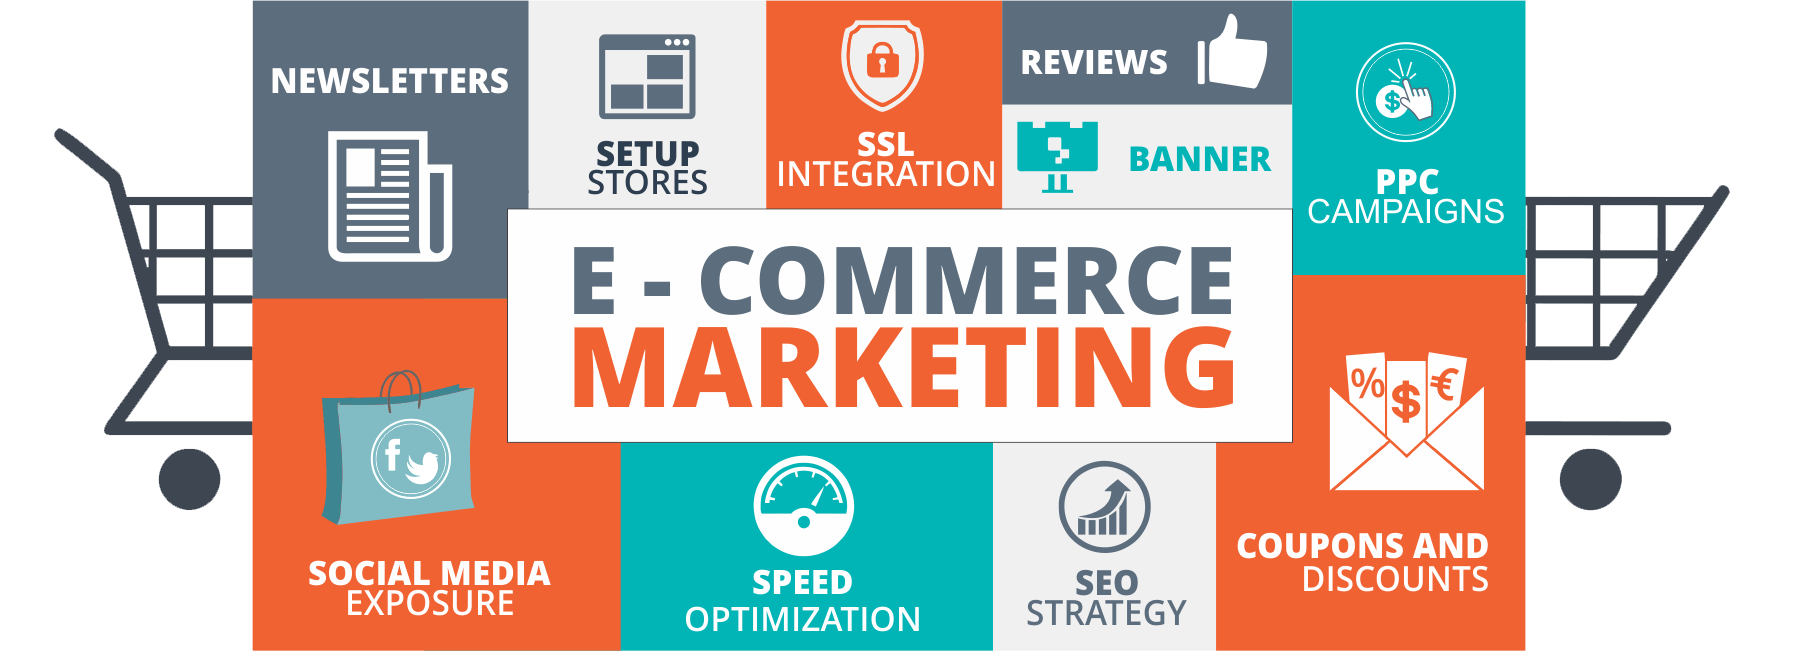 Best eCommerce Marketing Company